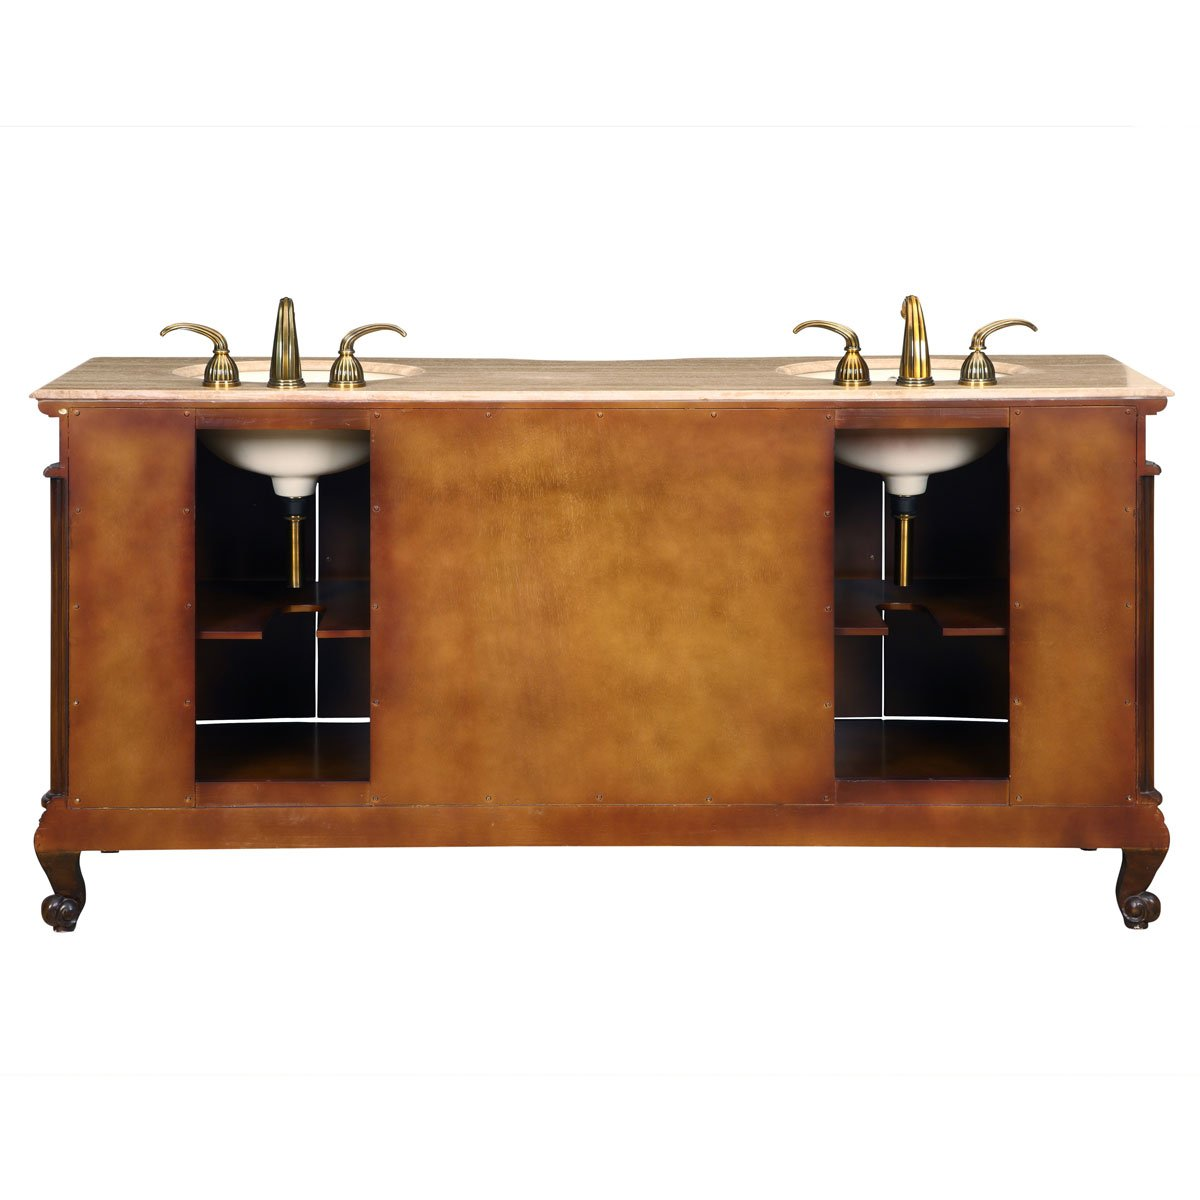 Silkroad Exclusive Travertine Stone Top Double Sink Bathroom Vanity with Bath Cabinet, 72-Inch by Silkroad Exclusive (Image #4)